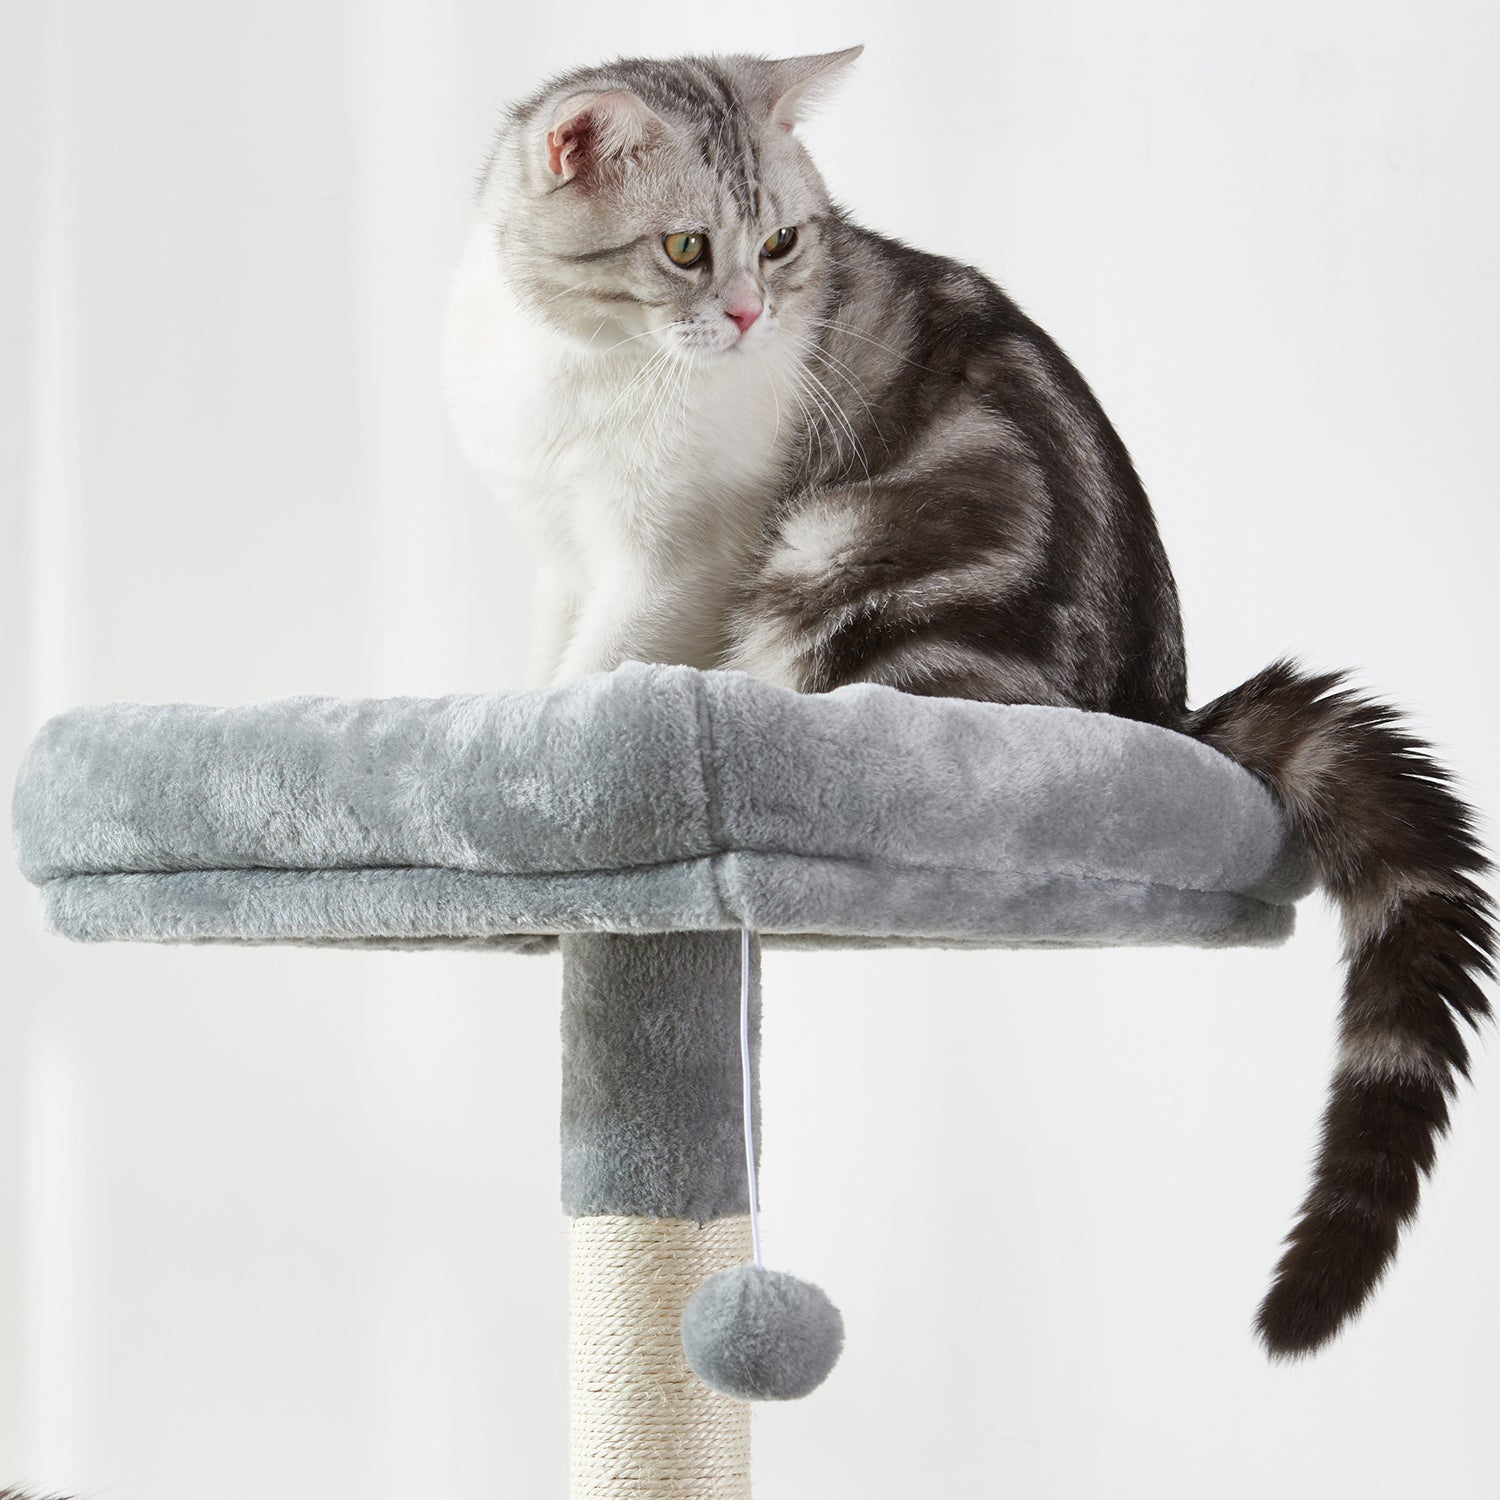 Slate Gray Large Cat Tree Condo with Sisal Scratching Posts Perches Houses Hammock, Cat Tower Furniture Kitty Activity Center Kitten Play House Gray W46918552